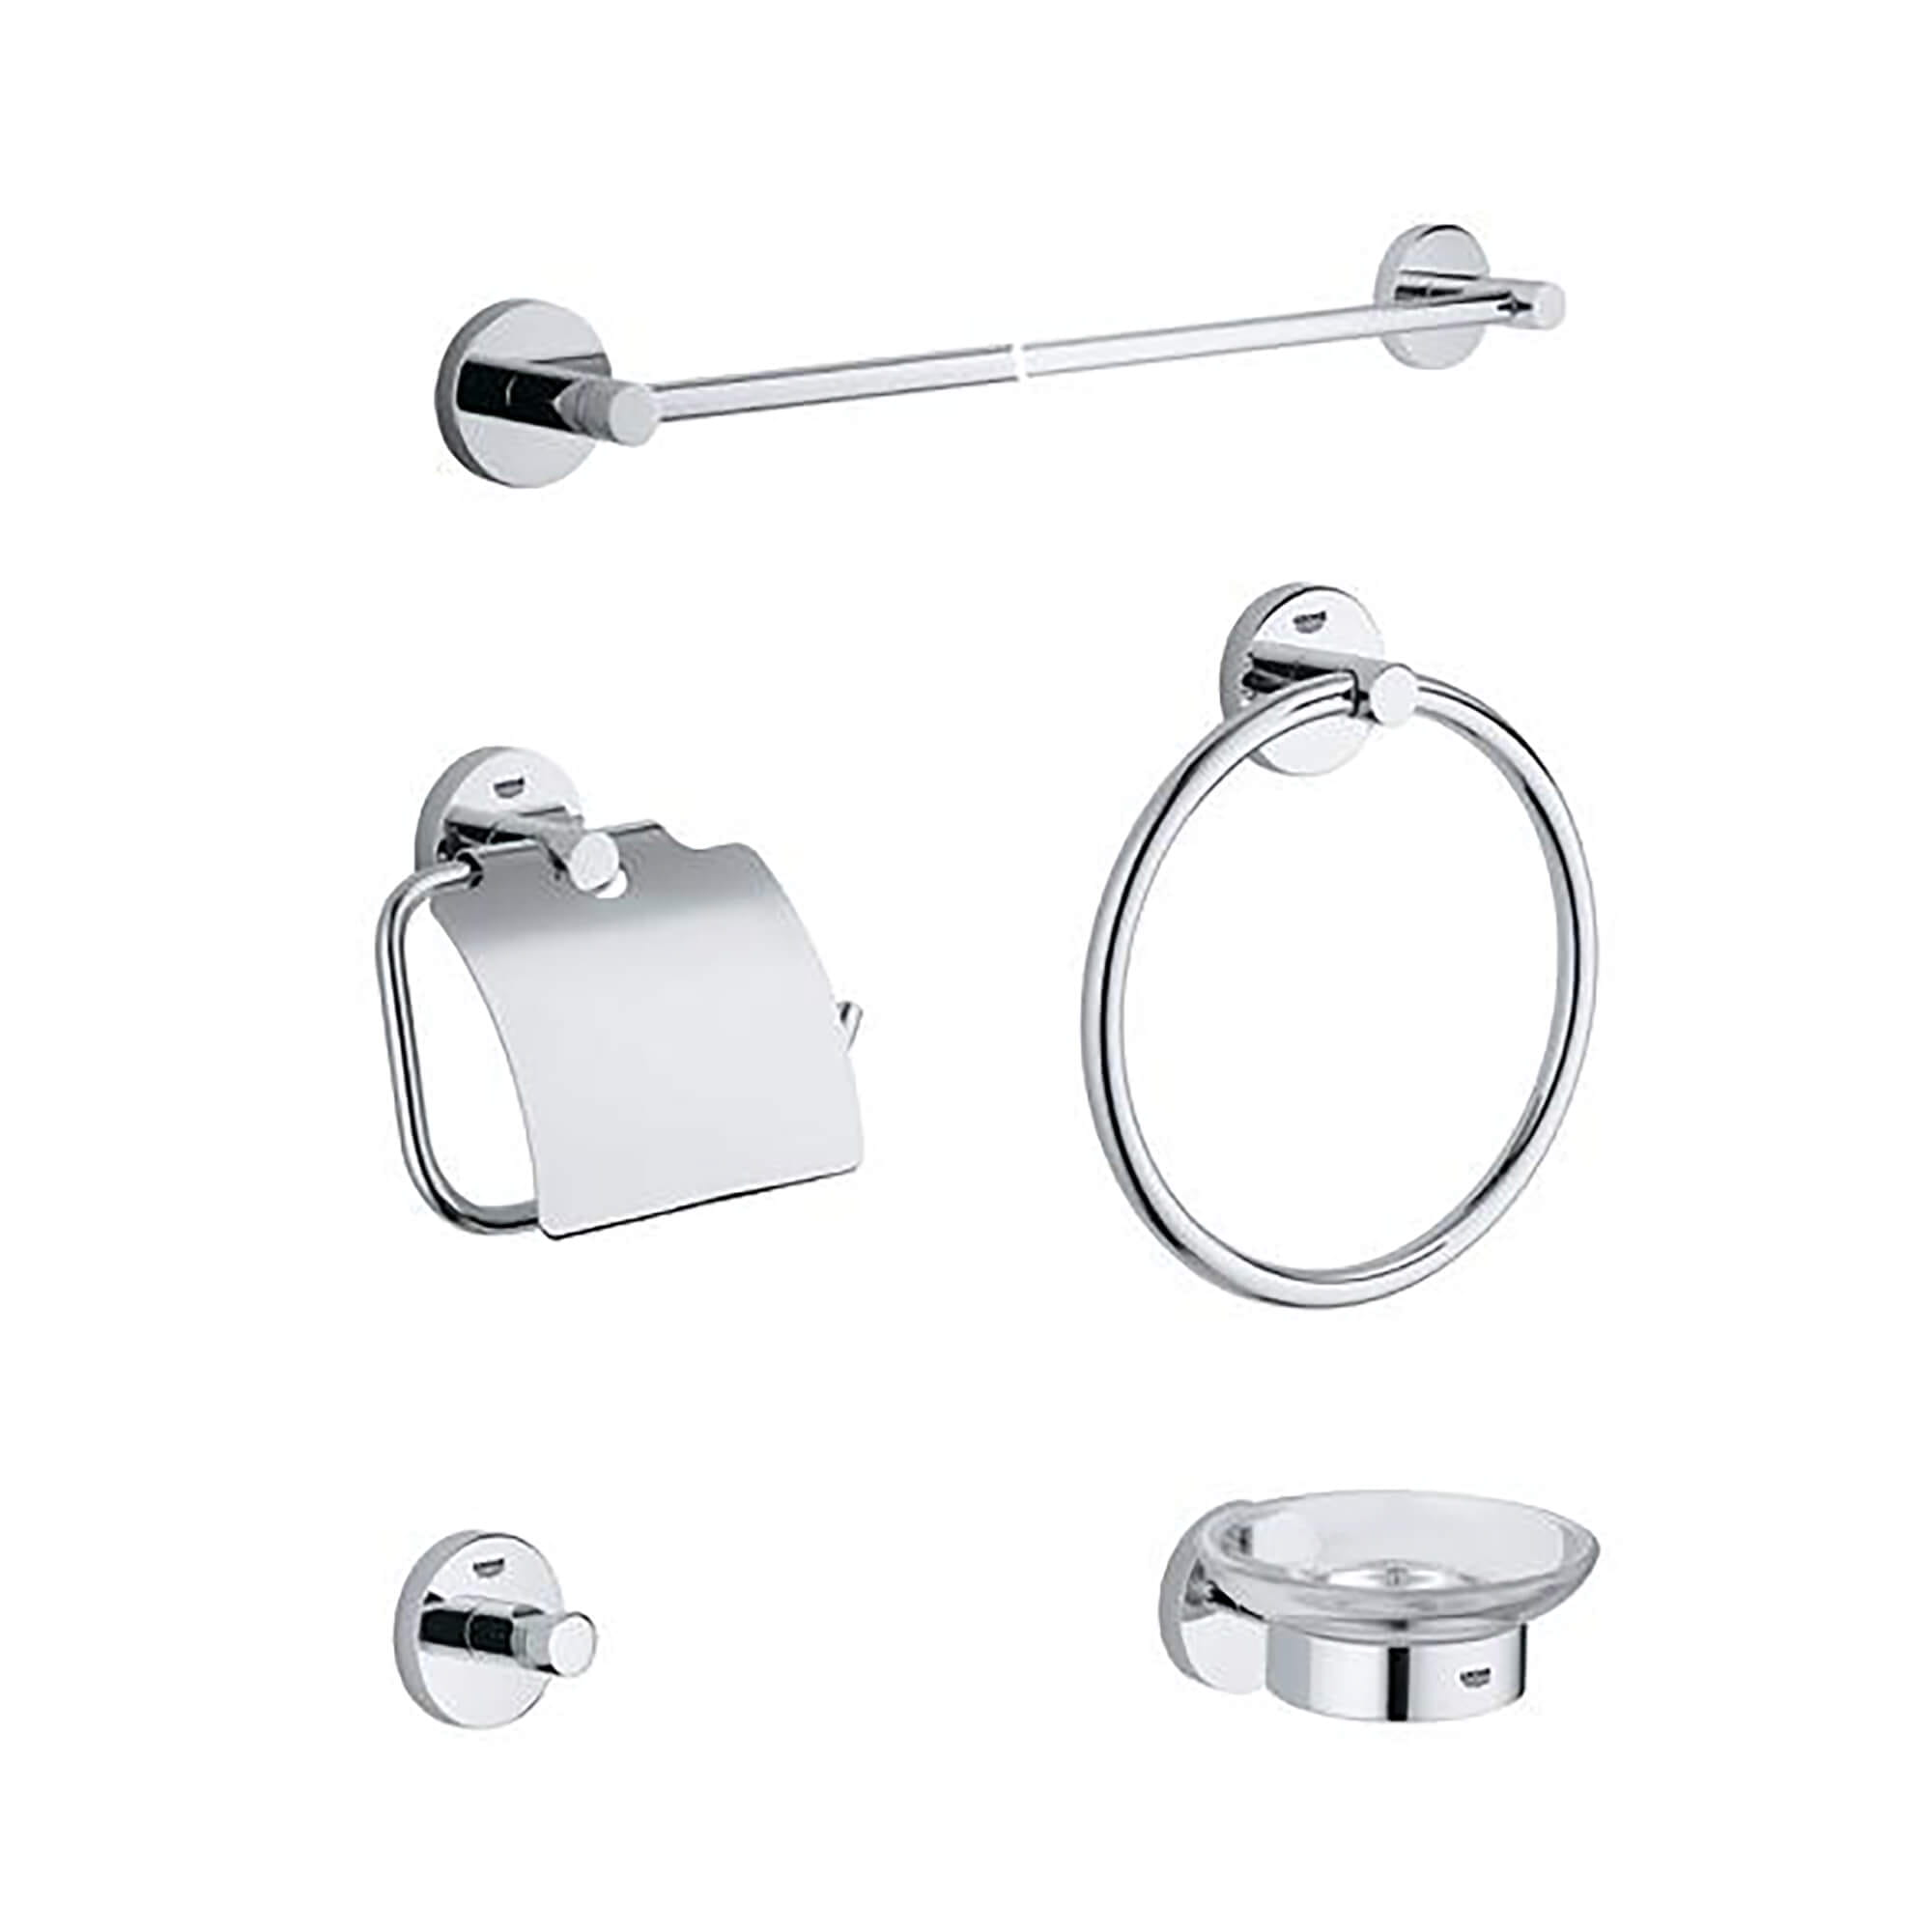 Accessory Set GROHE CHROME